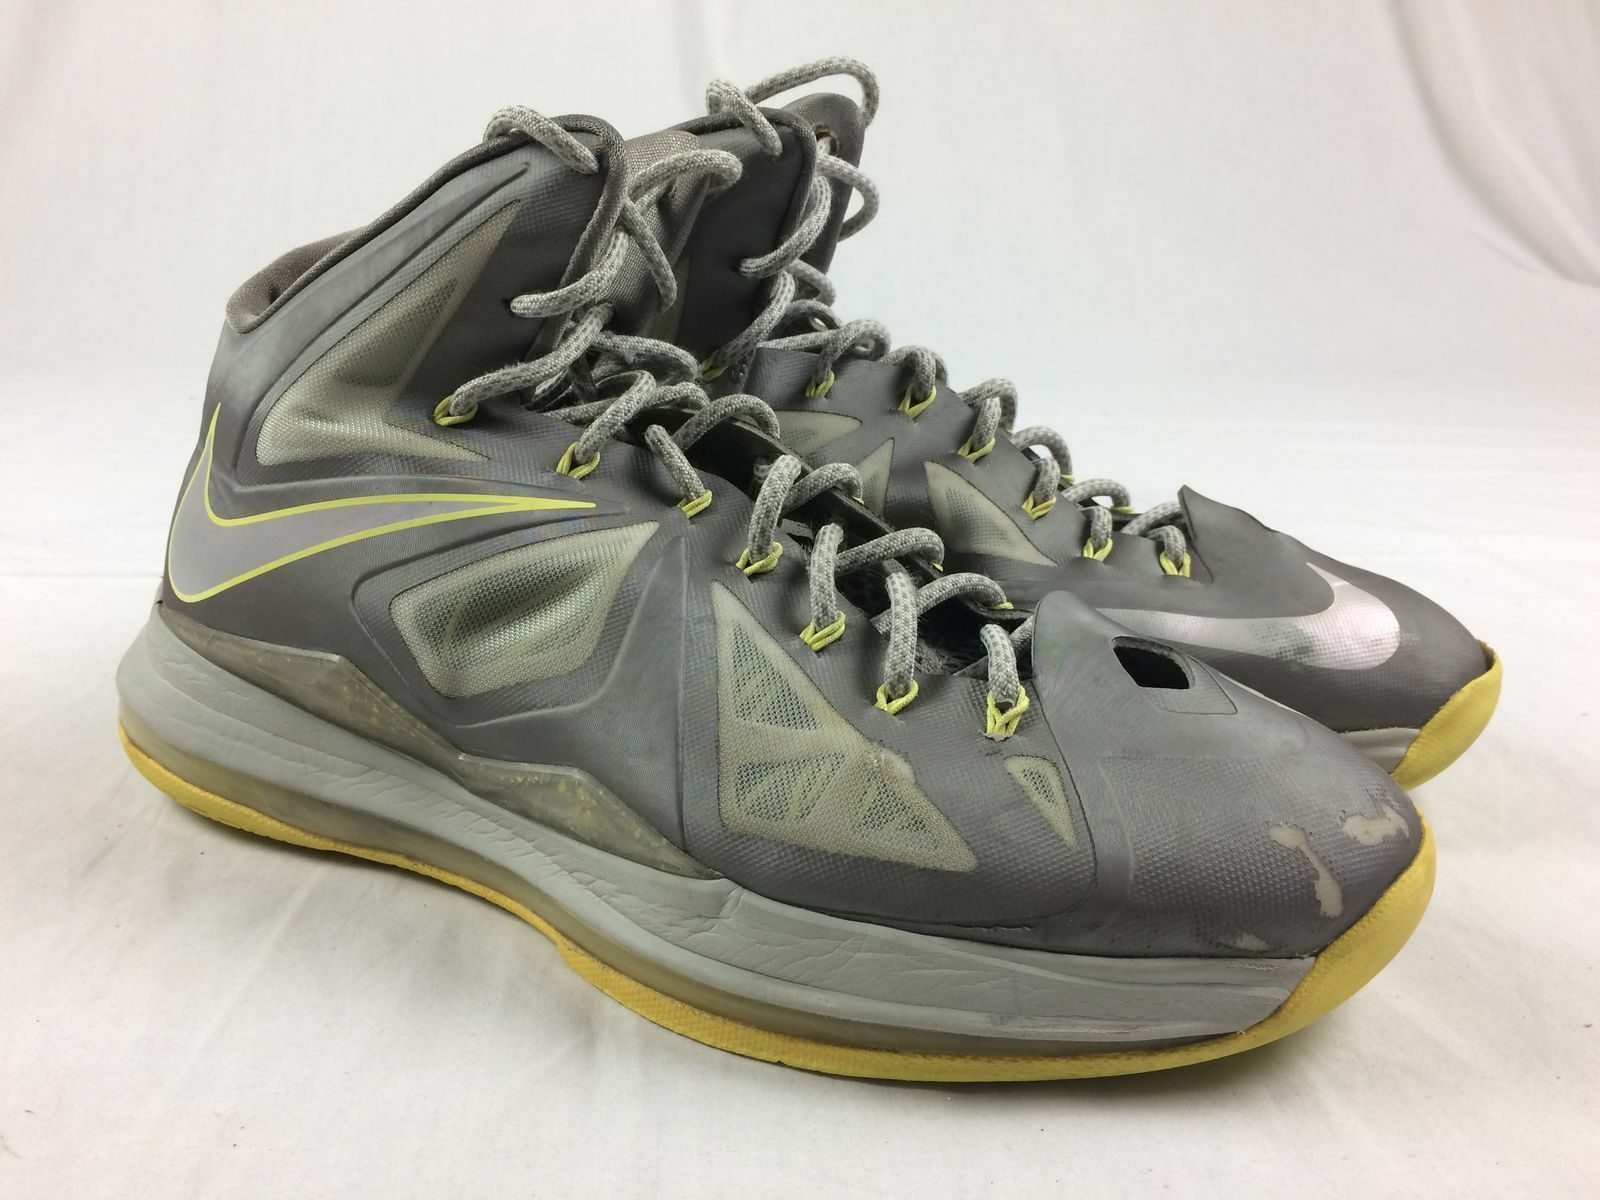 new style 471f4 a743f ... get nike lebron jaune x 10 gris electric jaune lebron basketball chaussures  hommes taille 12 26e15